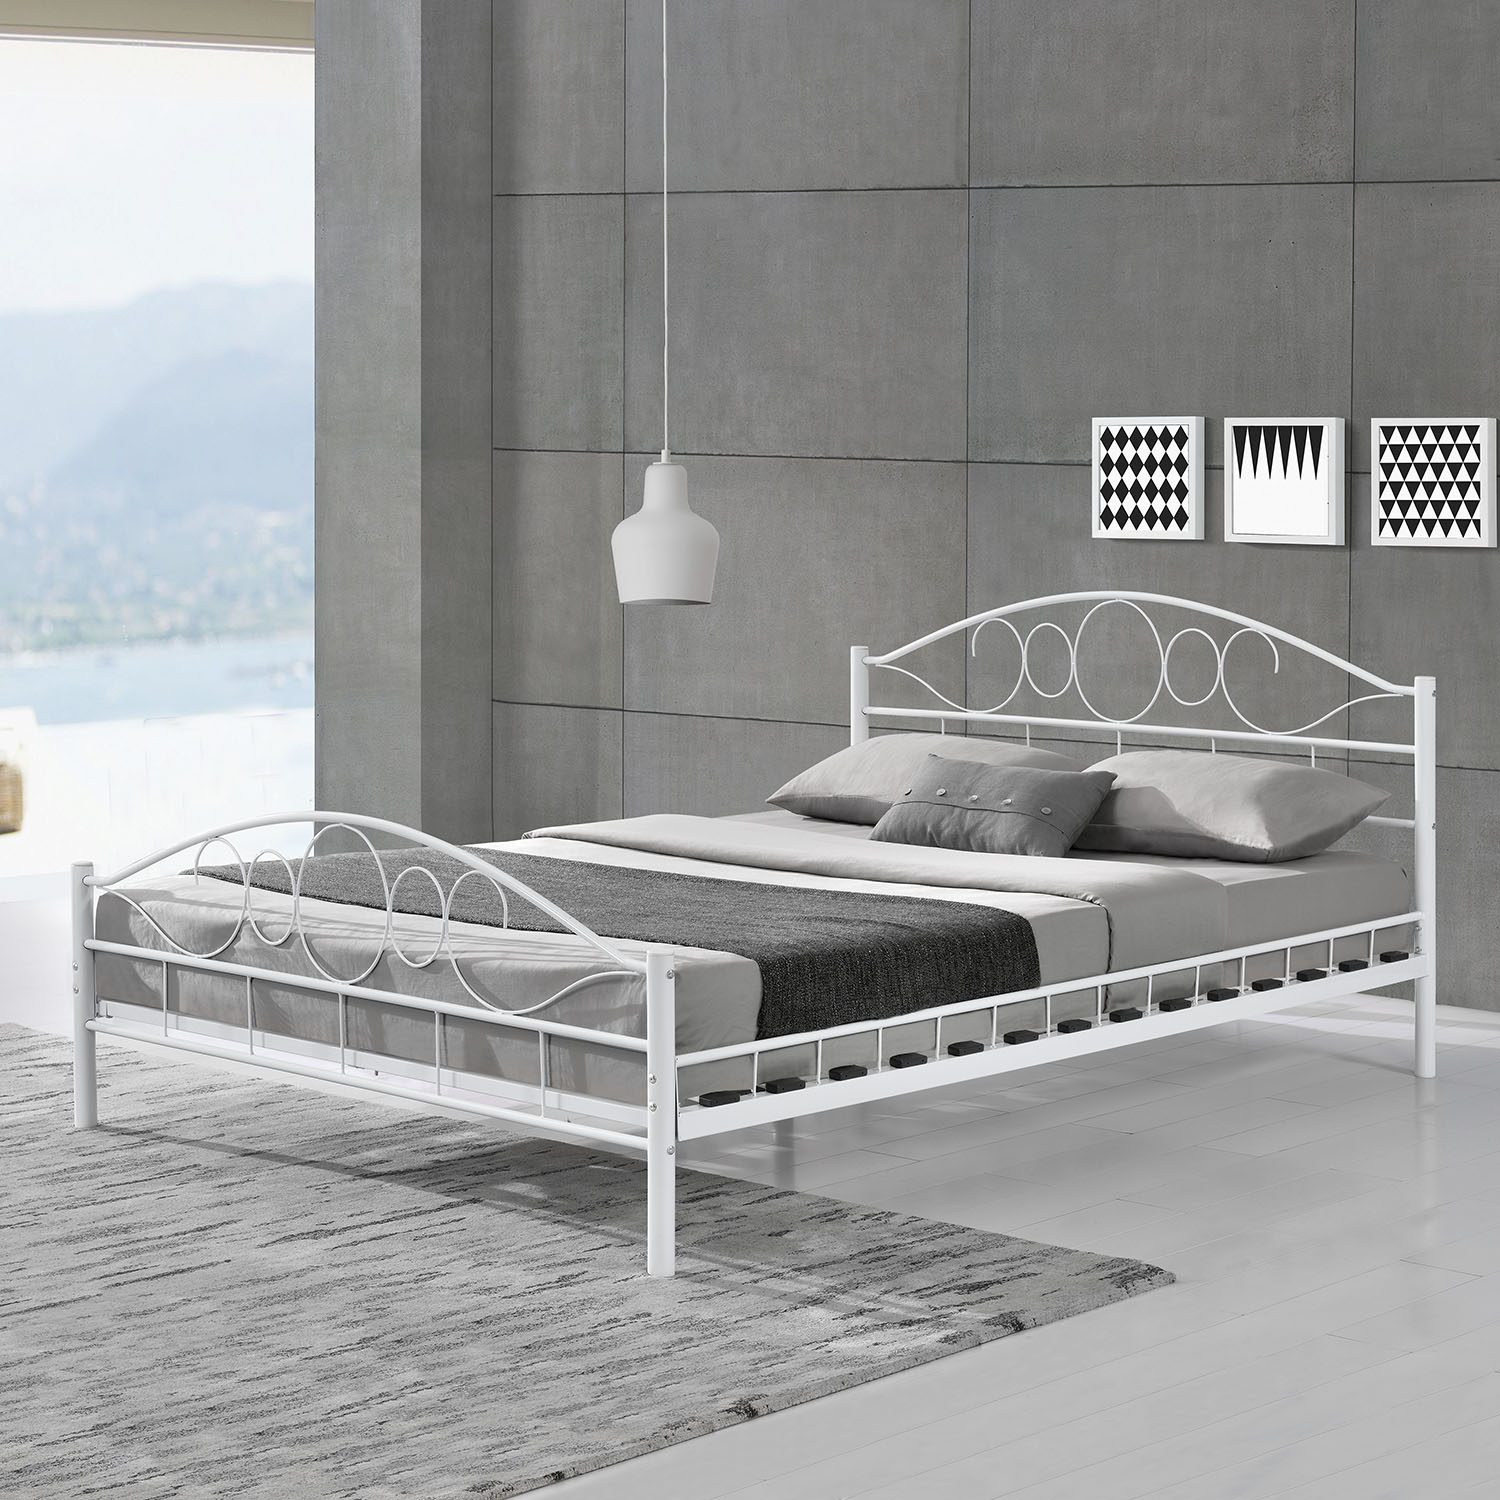 metallbett bettgestell doppelbett bettrahmen mit. Black Bedroom Furniture Sets. Home Design Ideas